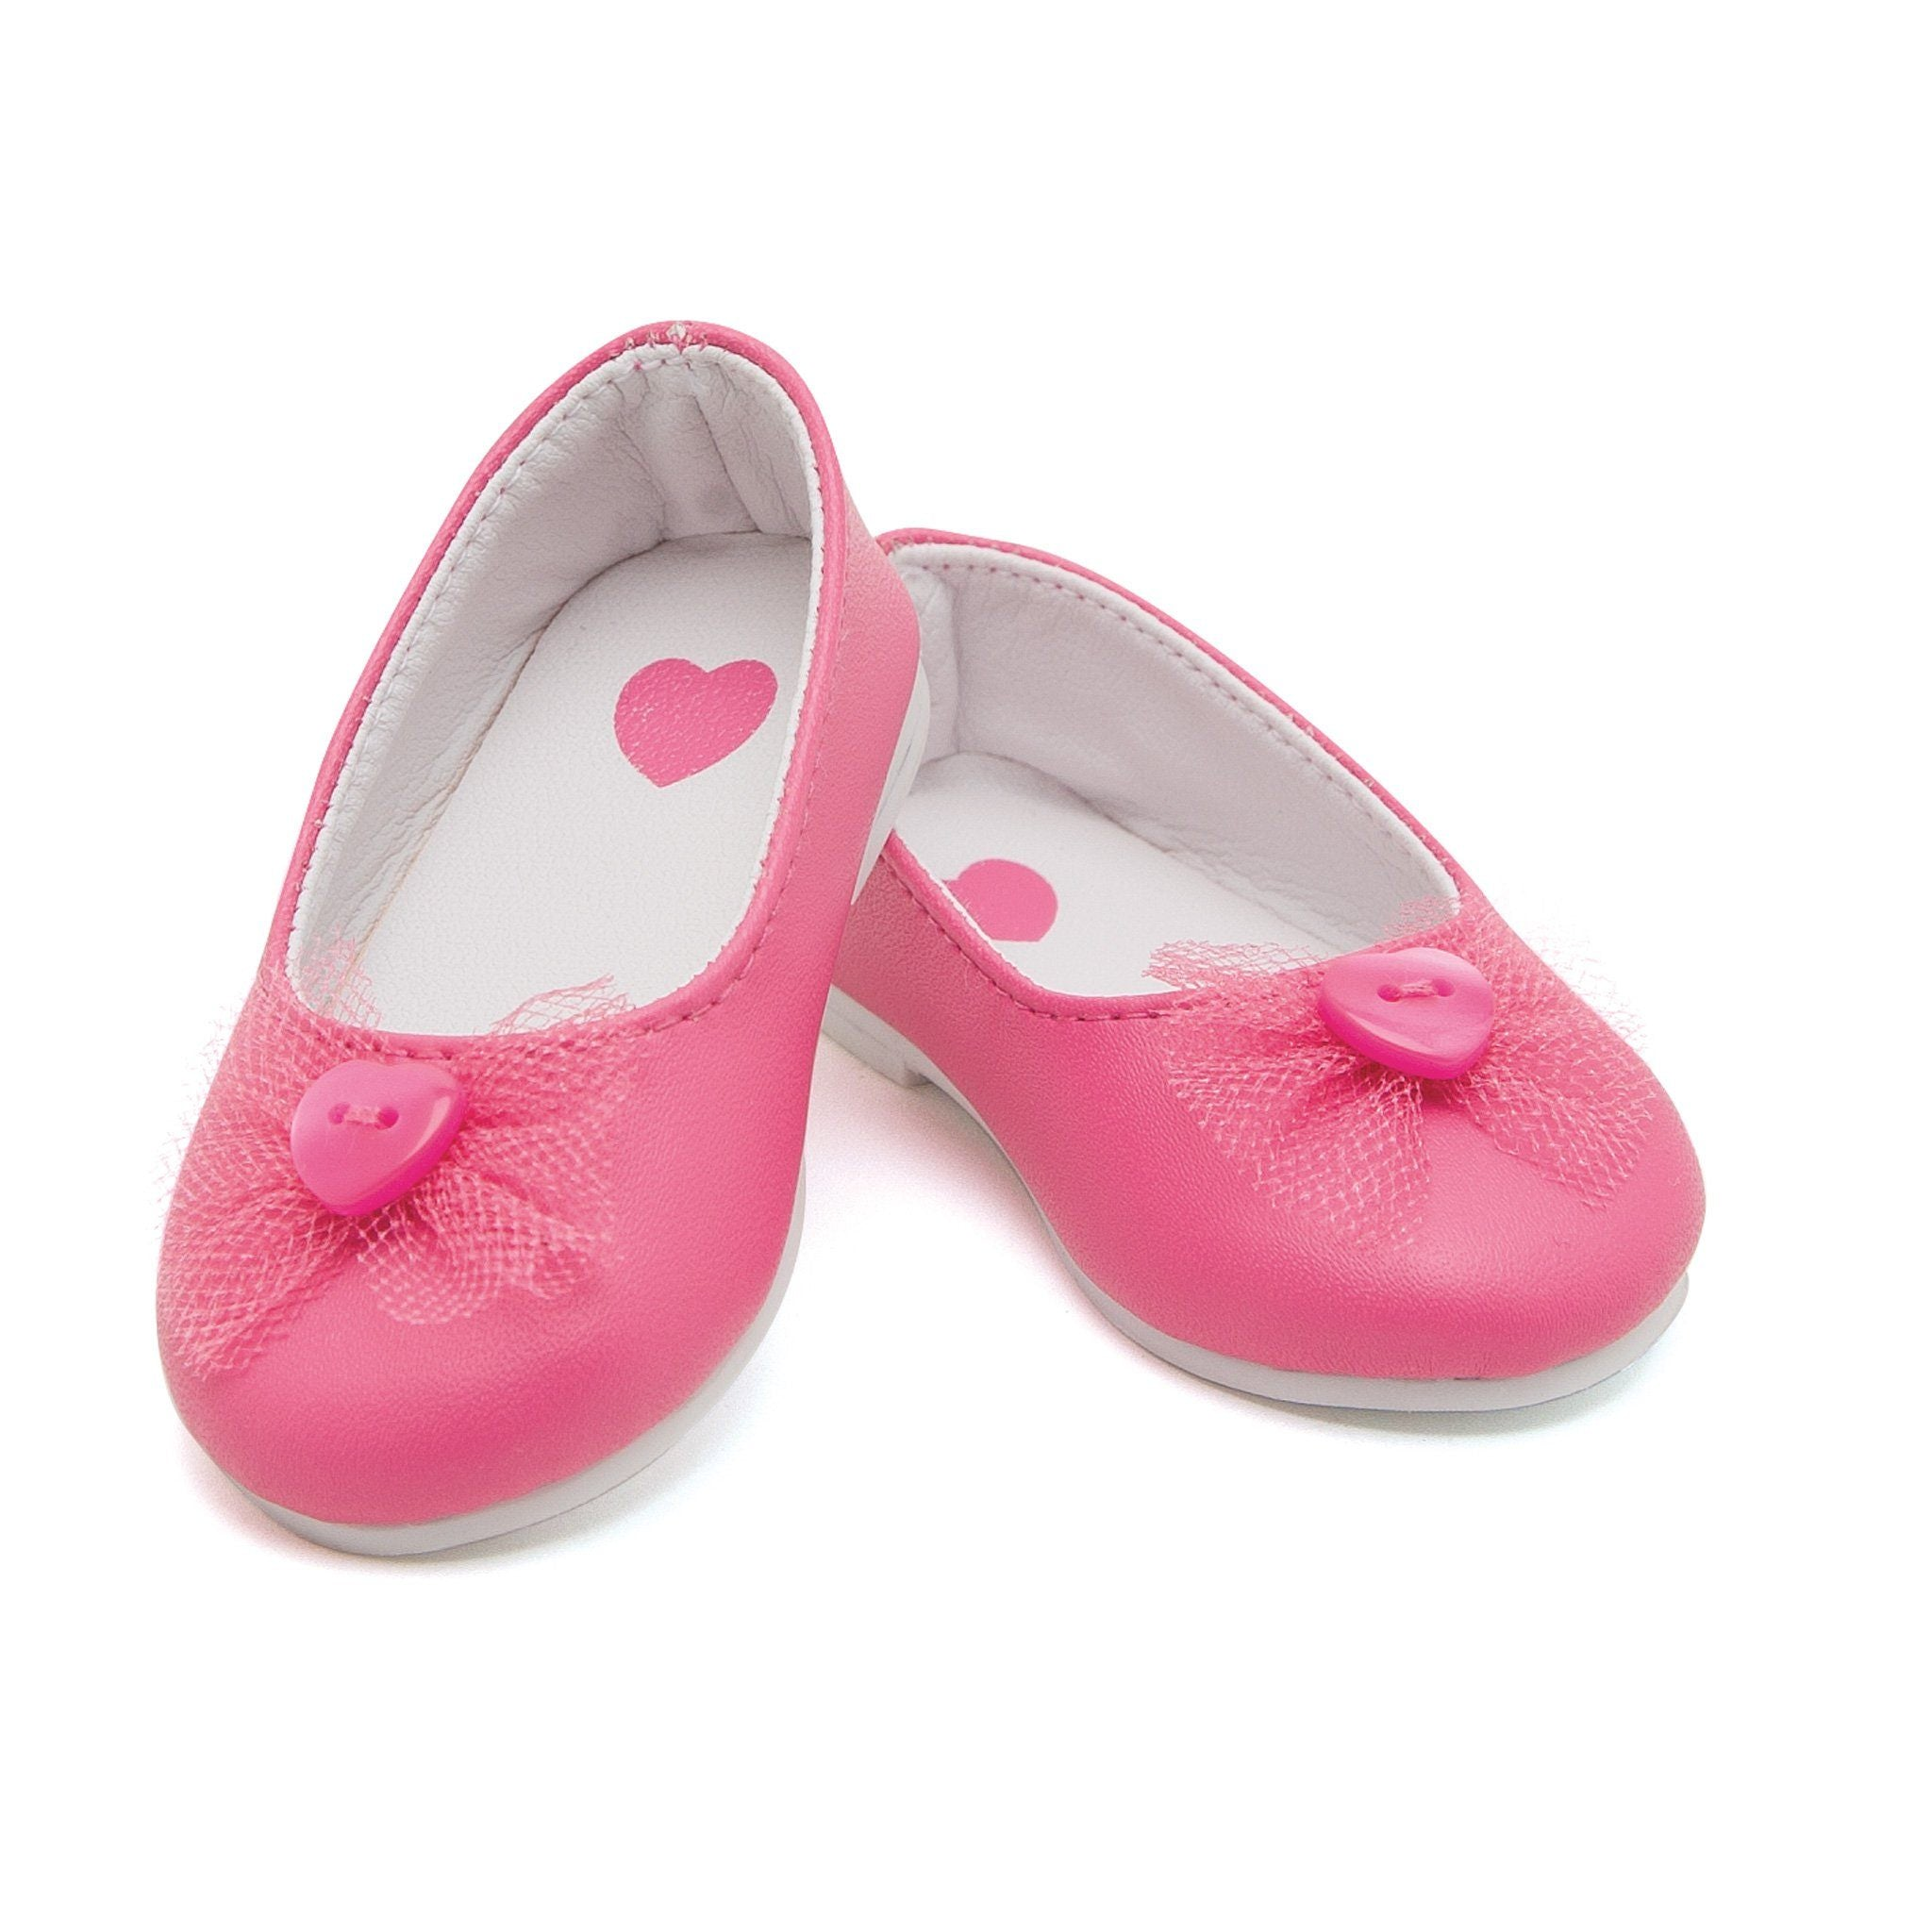 Tutu cute pink ballet flats with heart button fits all 18 inch dolls.